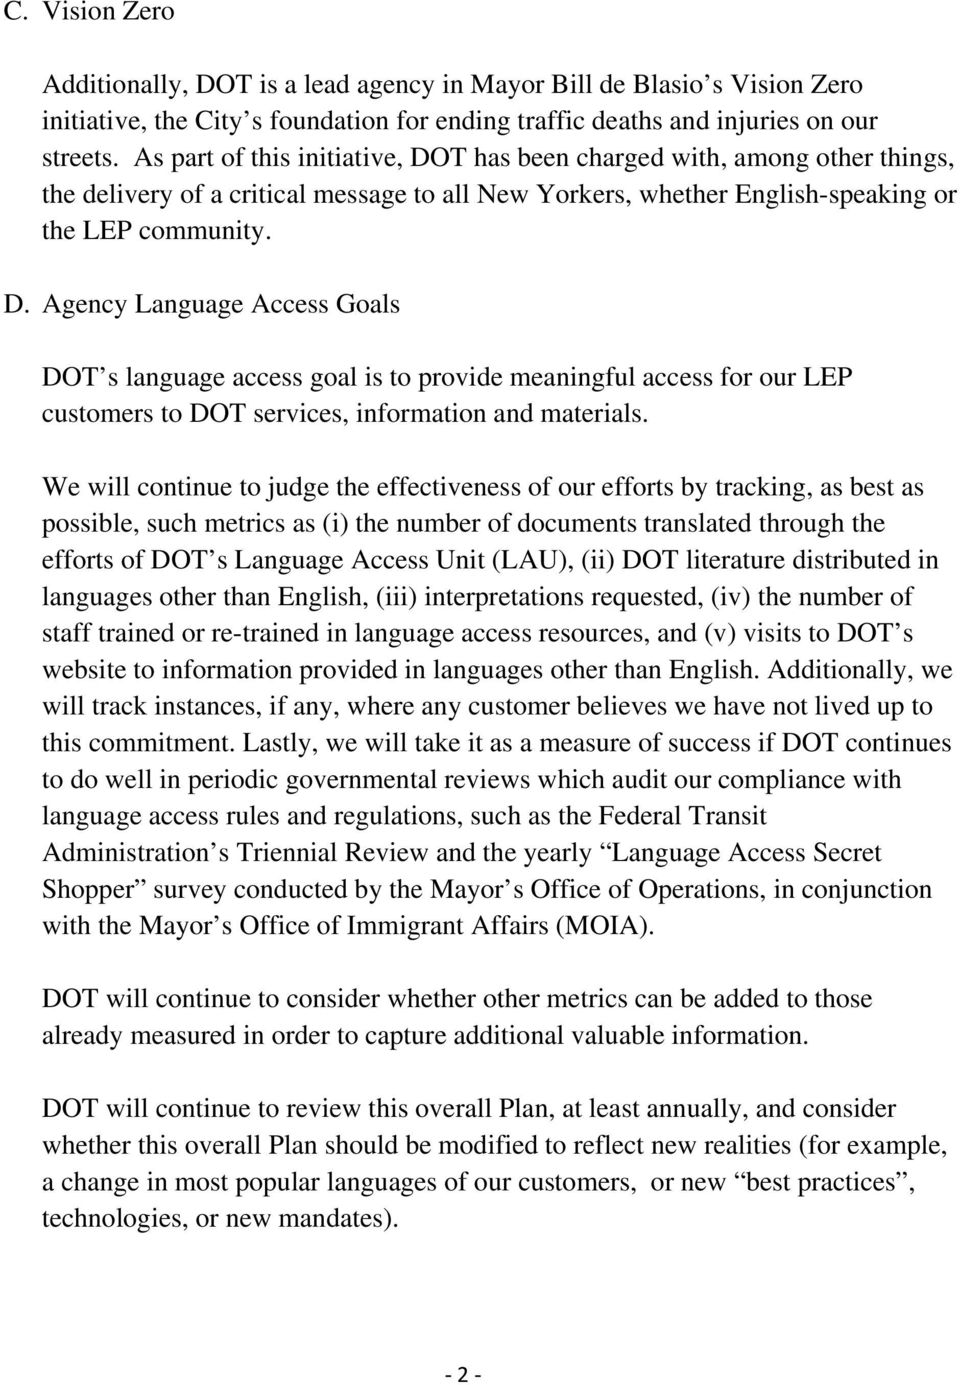 We will continue to judge the effectiveness of our efforts by tracking, as best as possible, such metrics as (i) the number of documents translated through the efforts of DOT s Language Access Unit